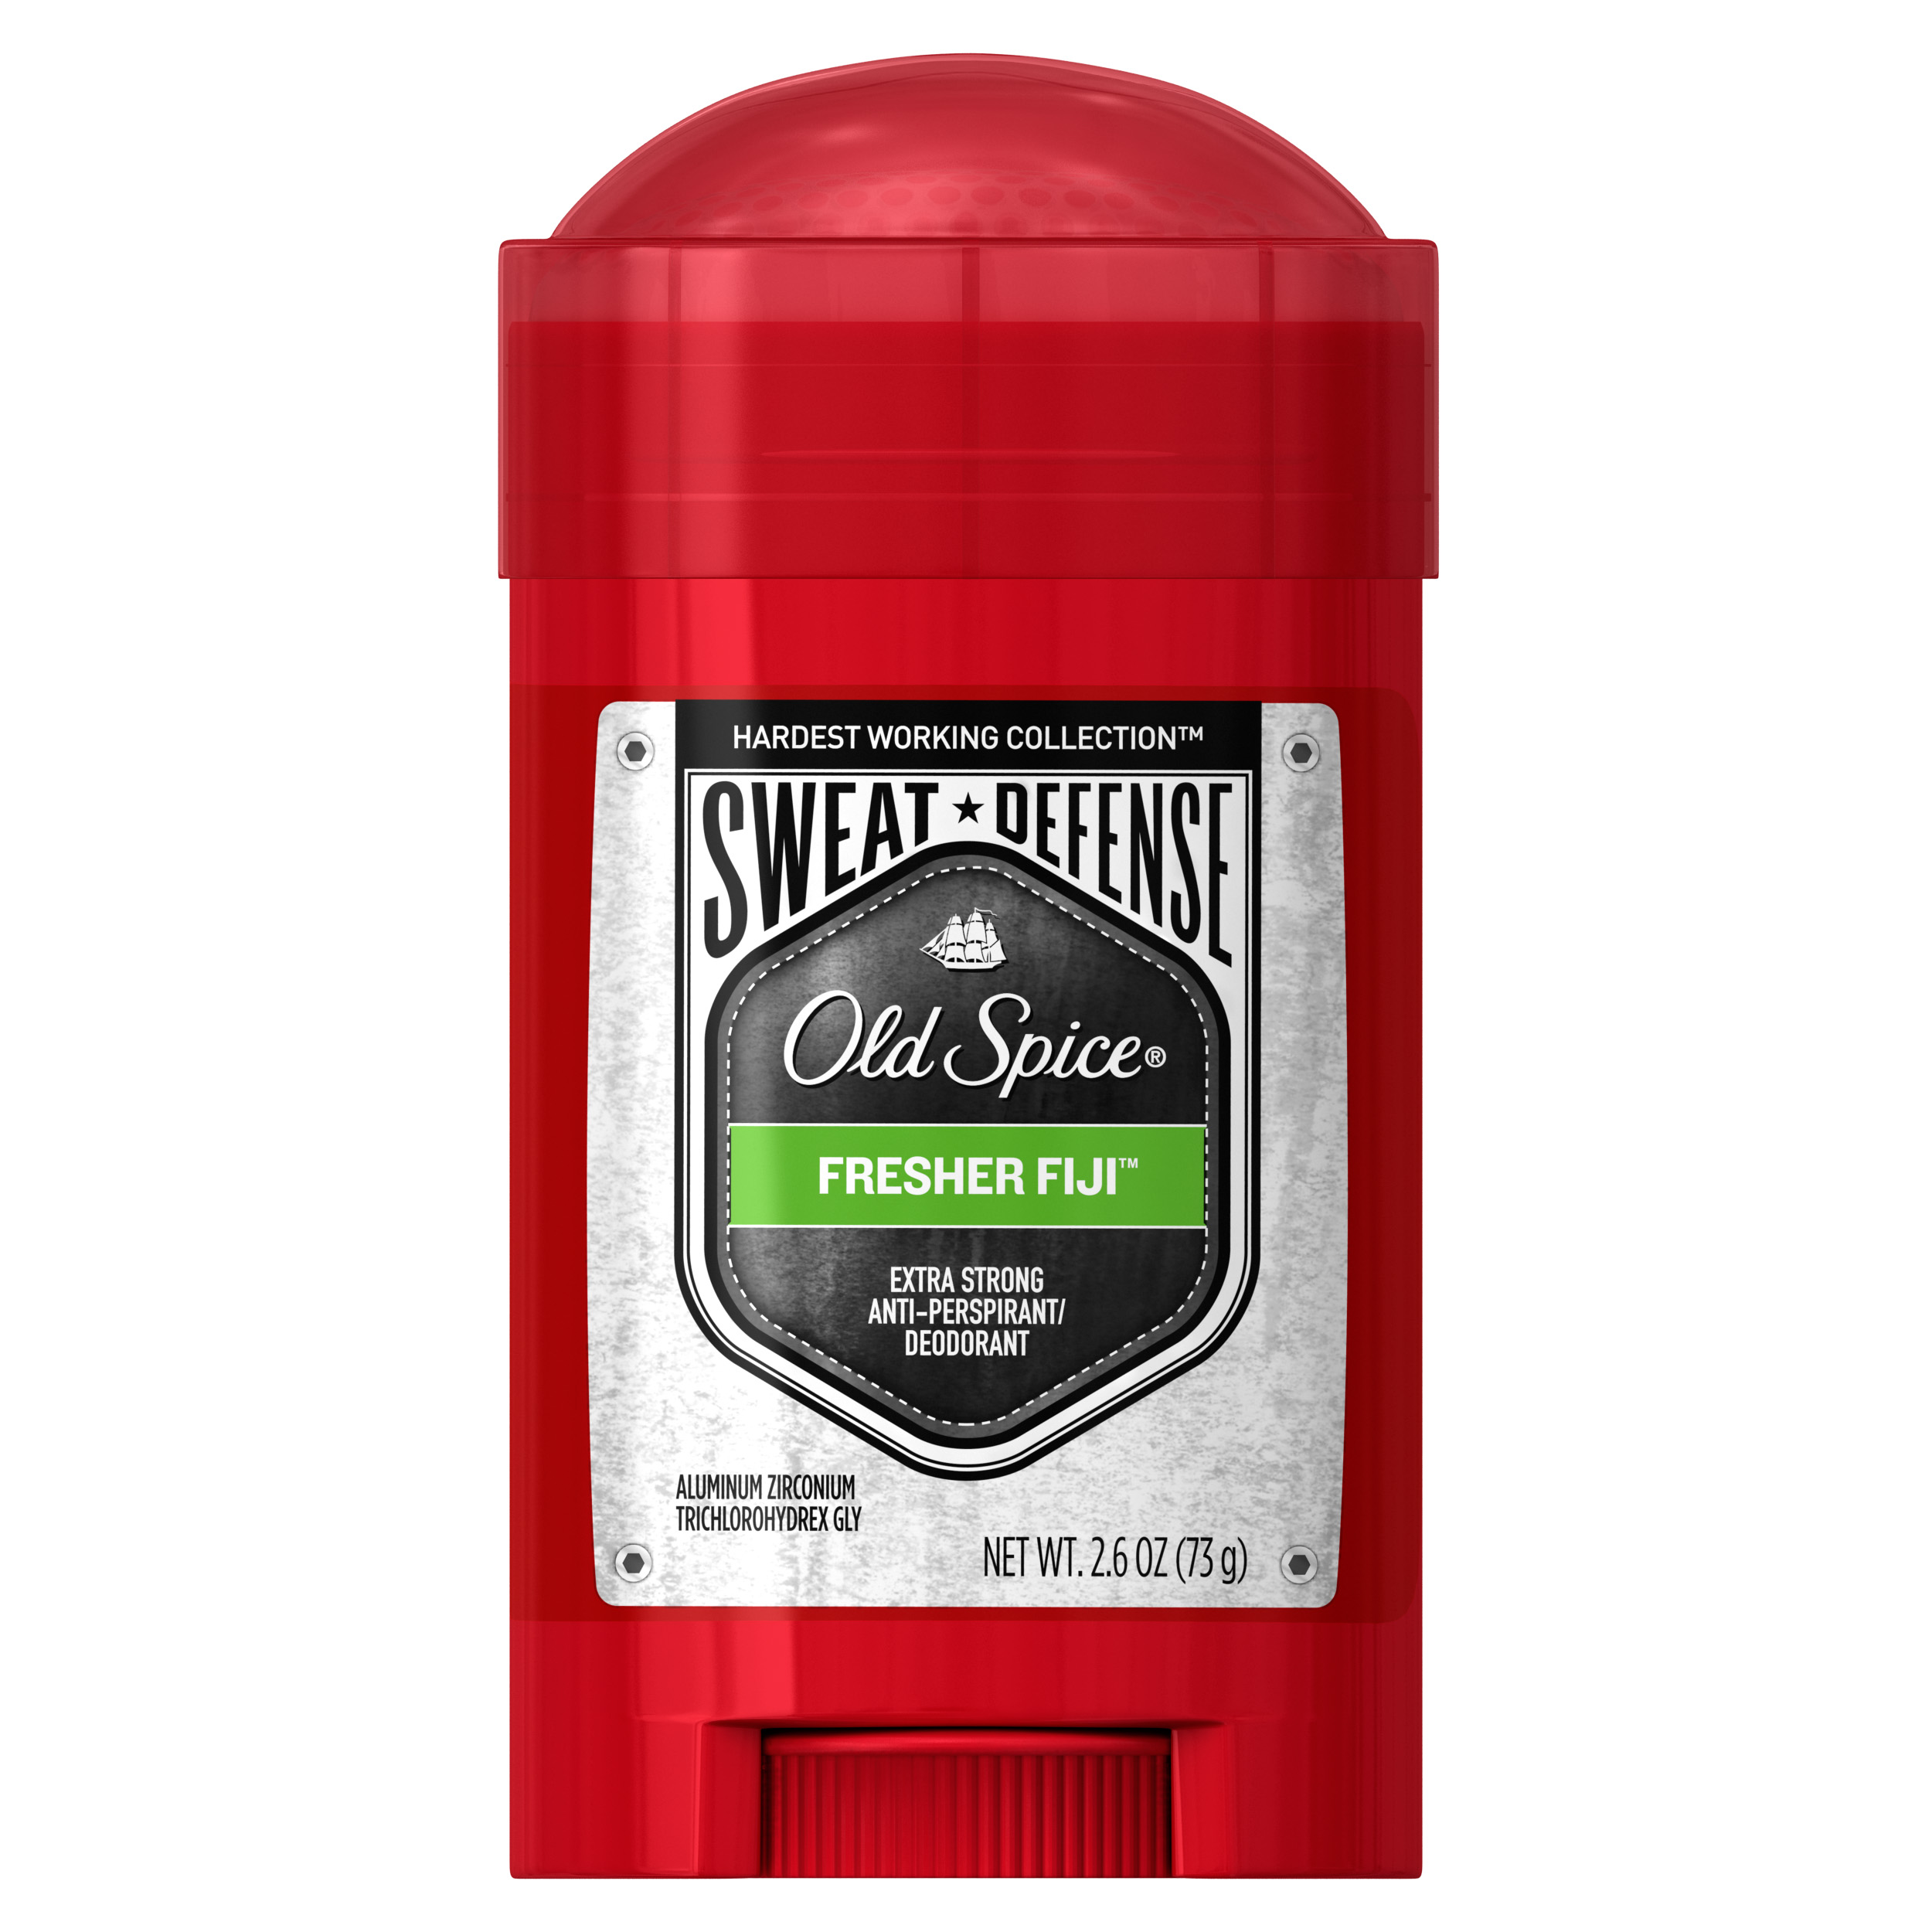 Old Spice Hardest Working Collection Sweat Defense Anti-Perspirant & Deodorant Fresher Fiji 2.6 oz